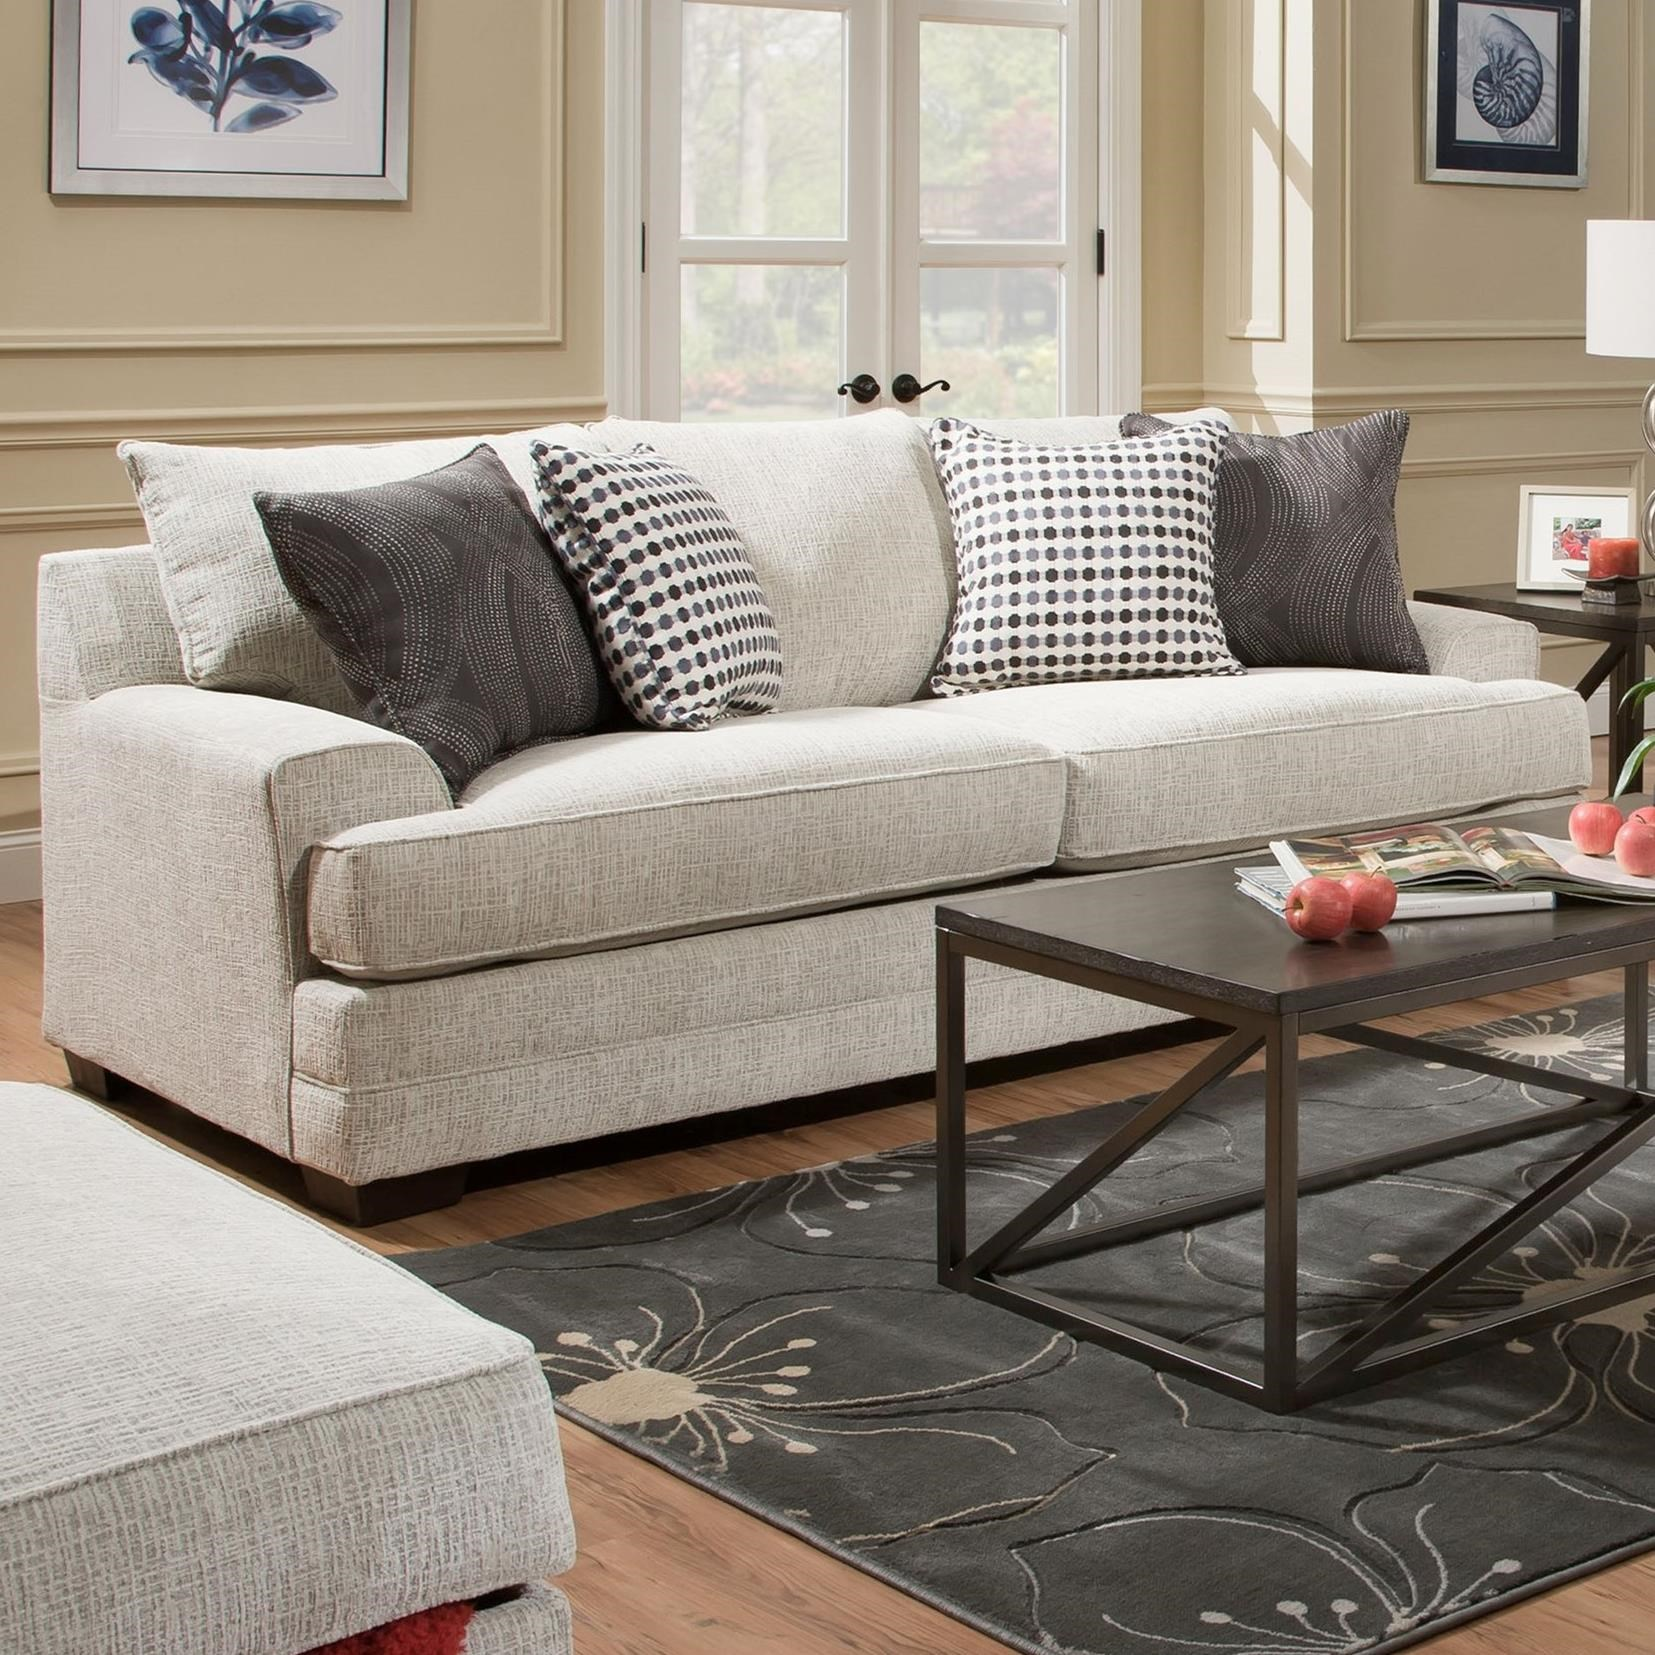 6548BR Sofa by Simmons Upholstery at Dunk & Bright Furniture